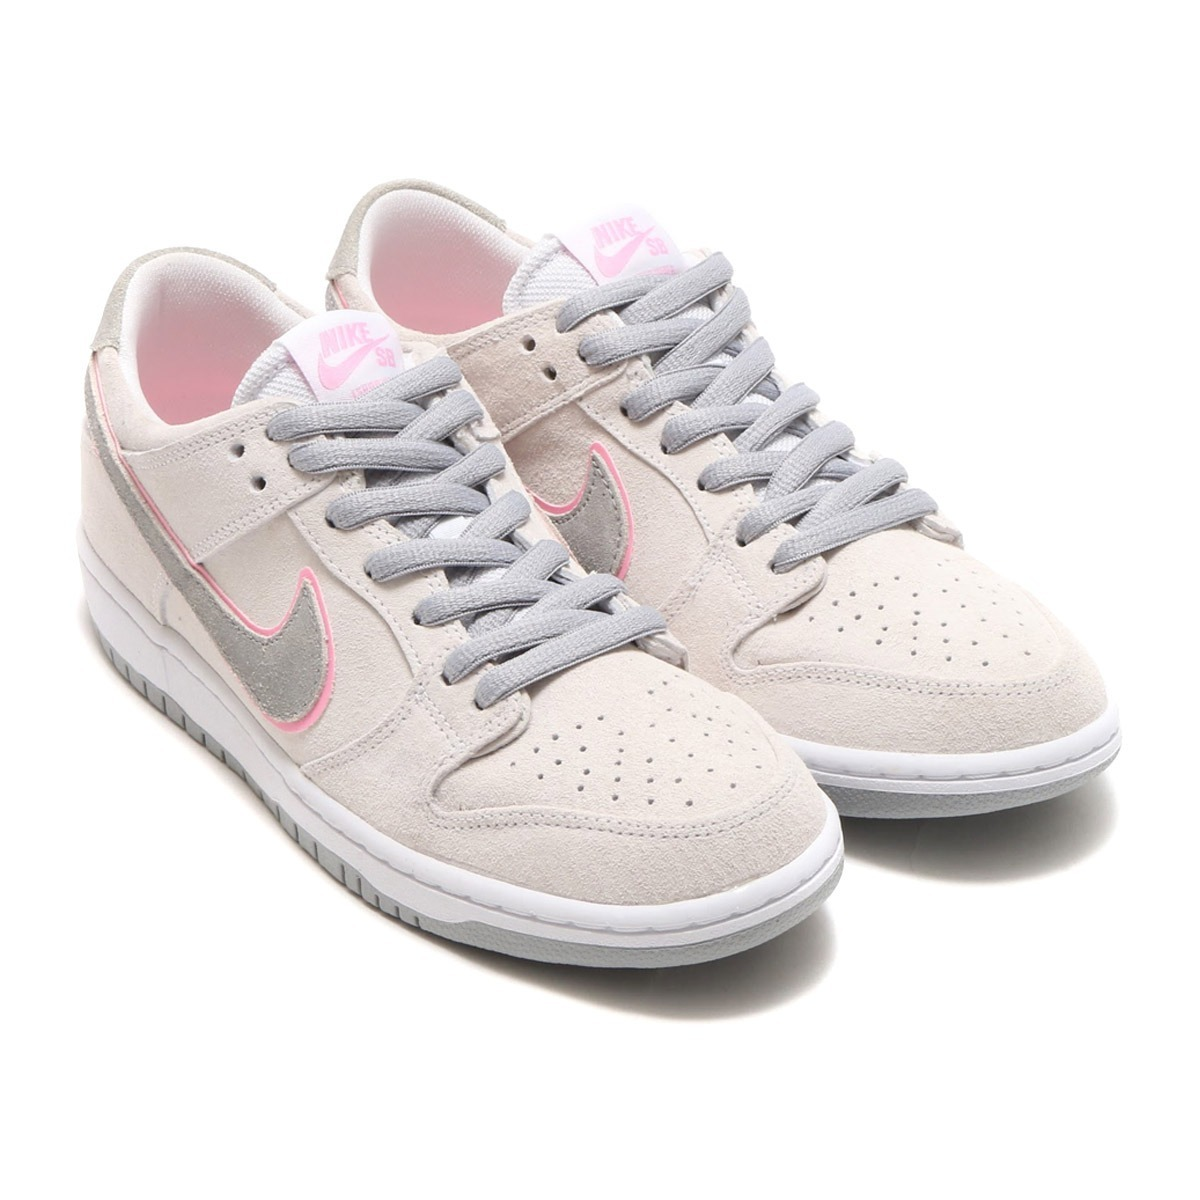 premium selection c3fe3 e49d4 zapatillas nike sb dunk low pro white perfect pink. Cargando zoom.